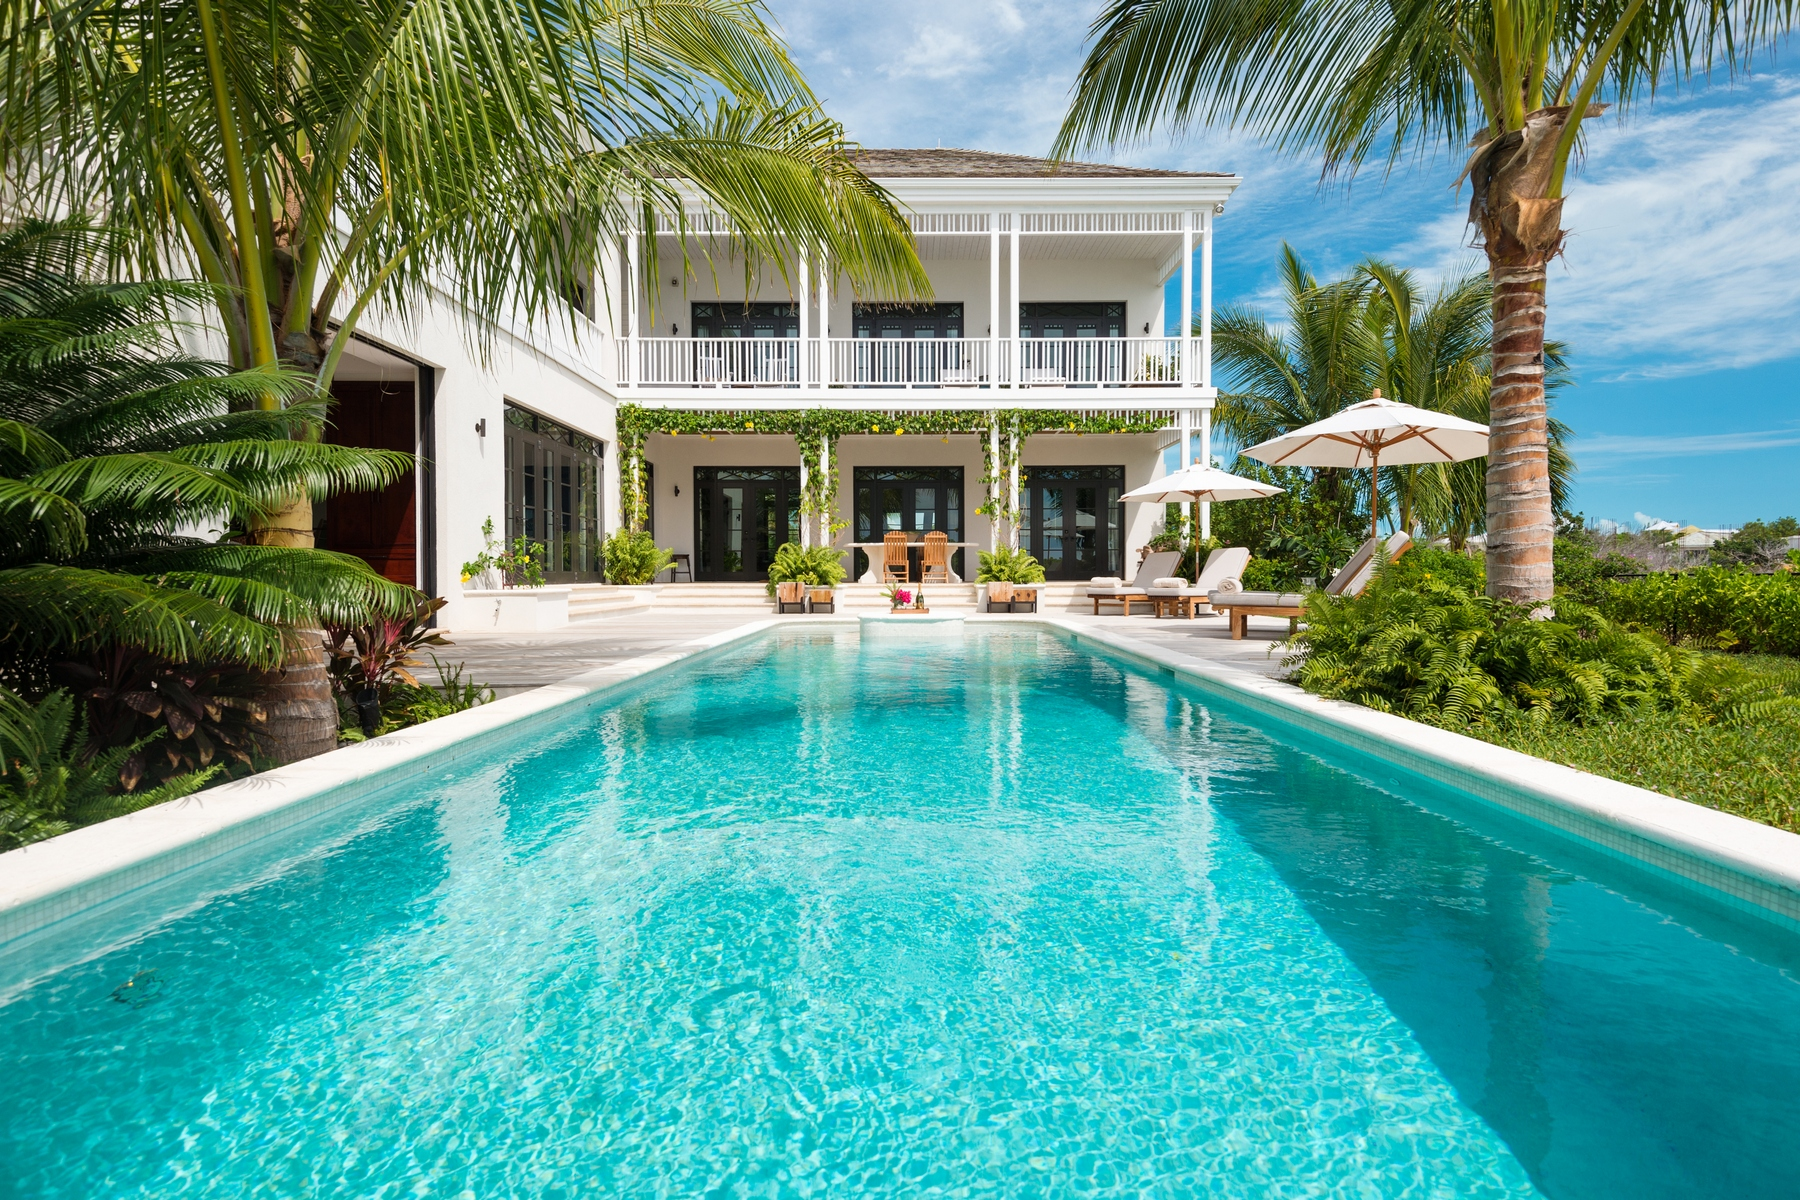 Single Family Home for Rent at Saving Grace Vacation Rental Beachfront Grace Bay, Providenciales TC Turks And Caicos Islands